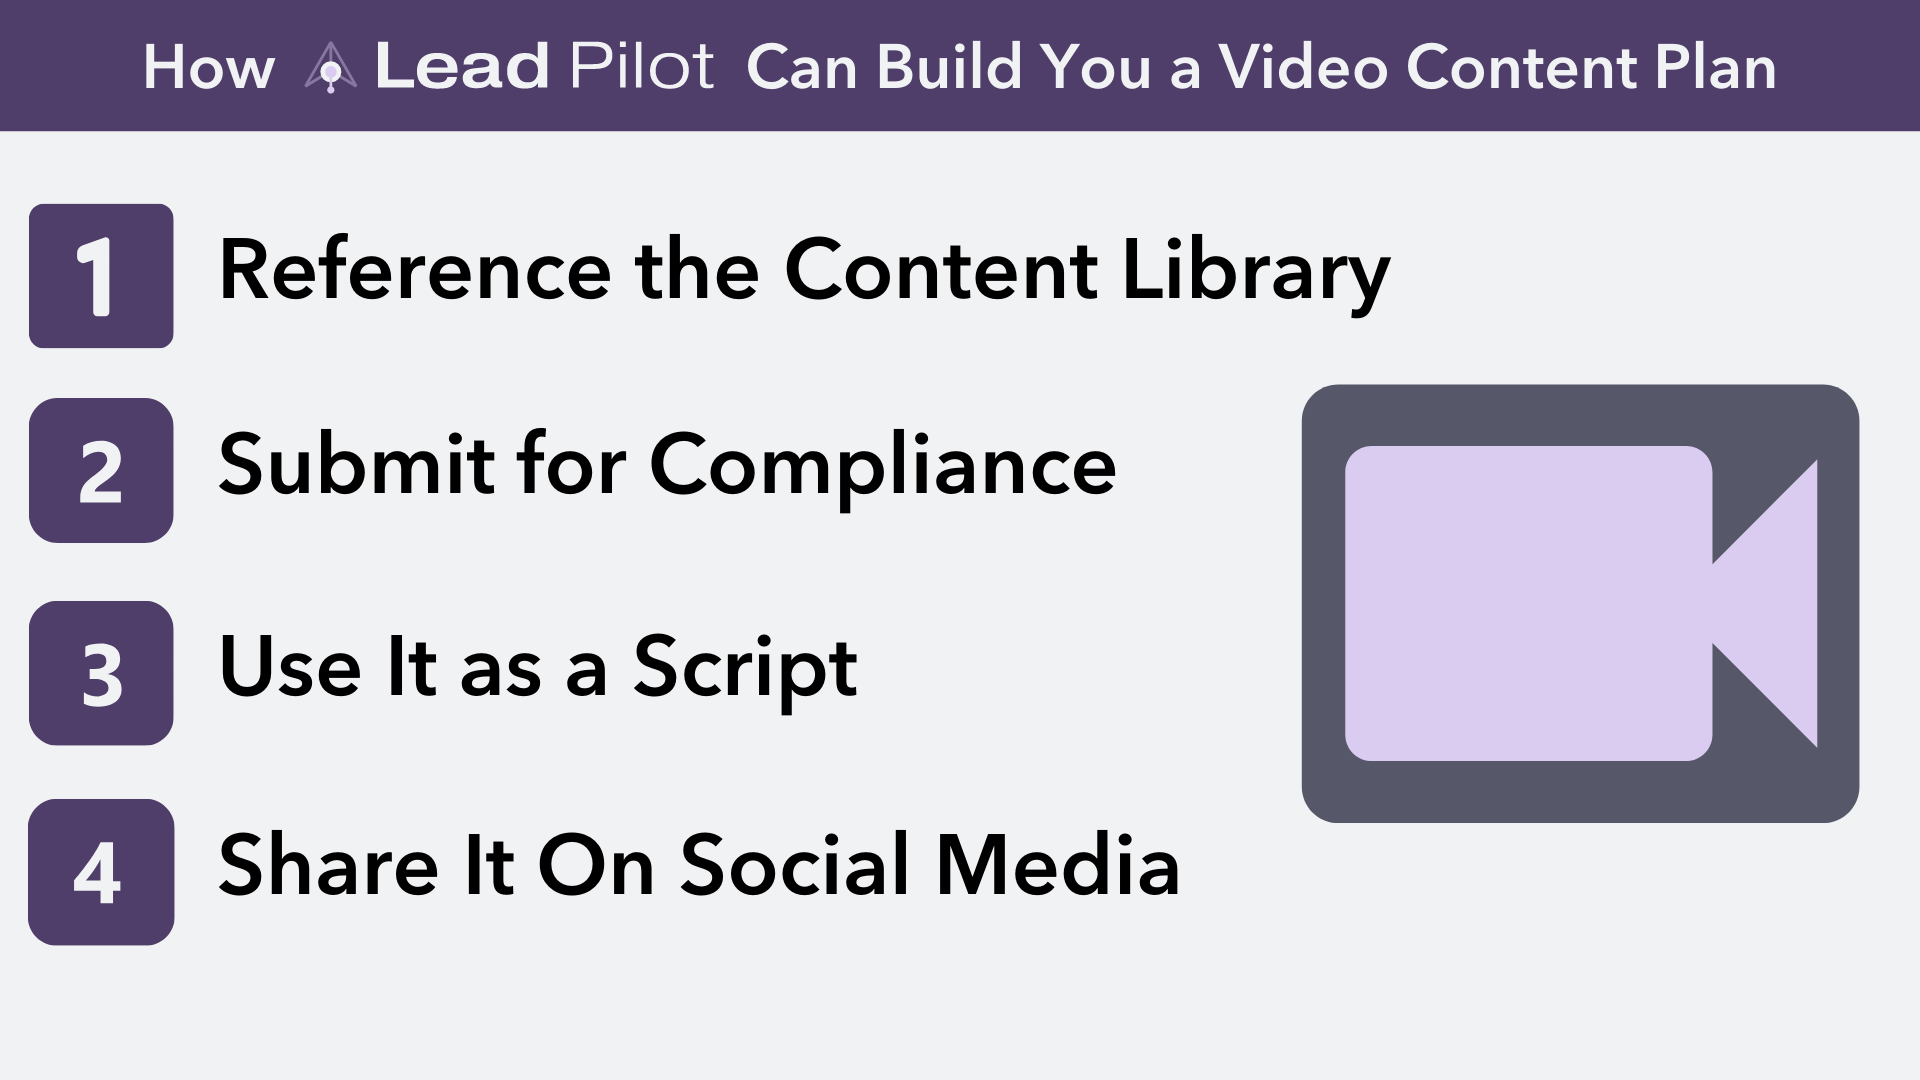 Video content ideas with lead pilot